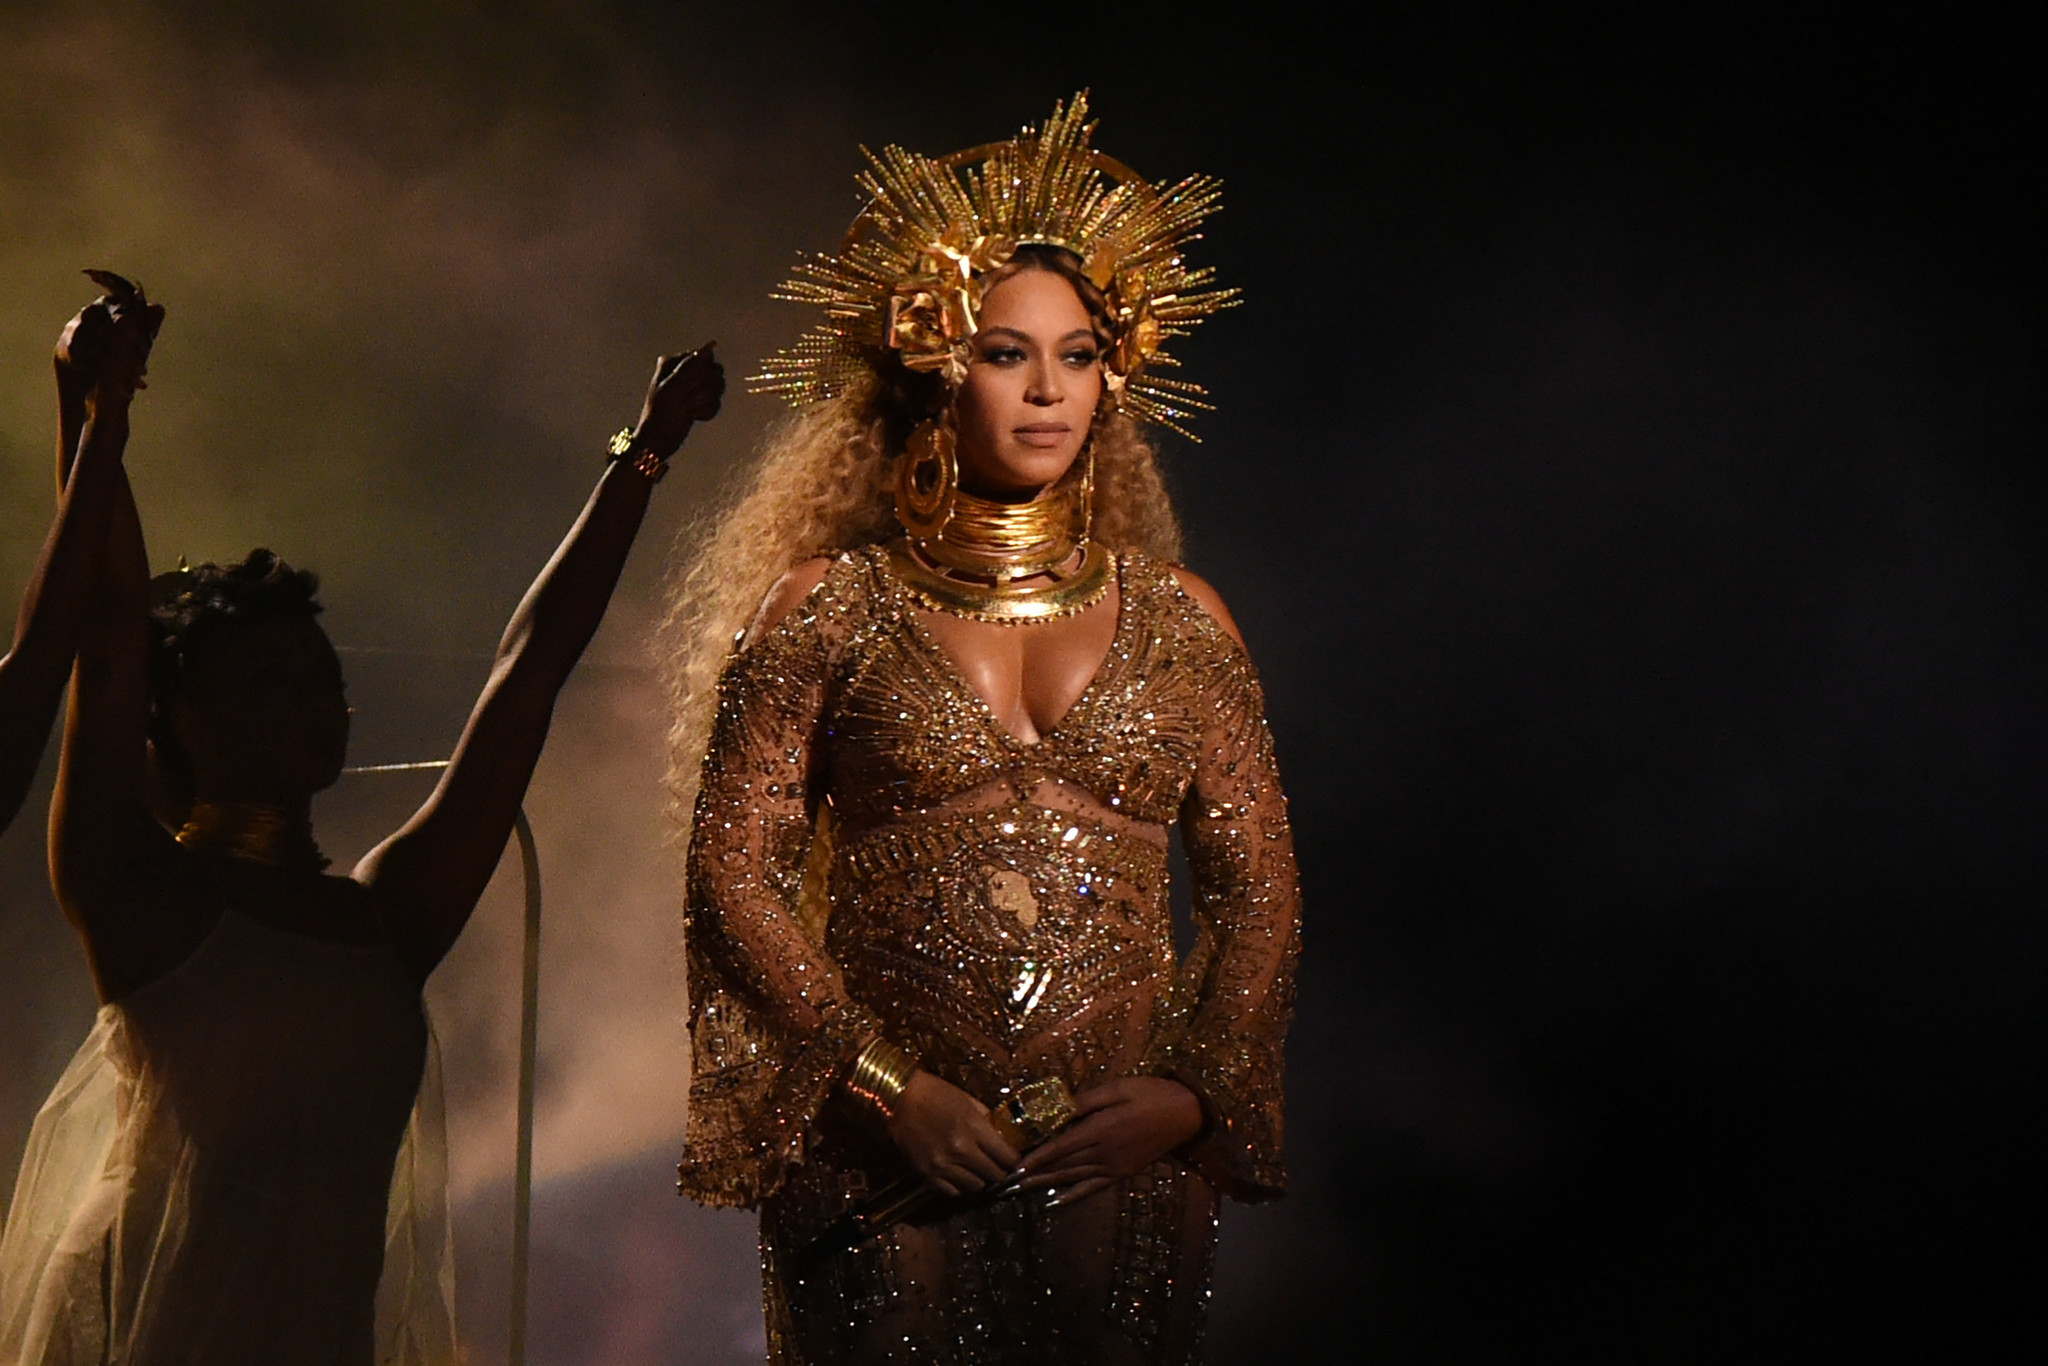 Church Mass inspired by Beyoncé coming to Spelman for Women's Herstory Month